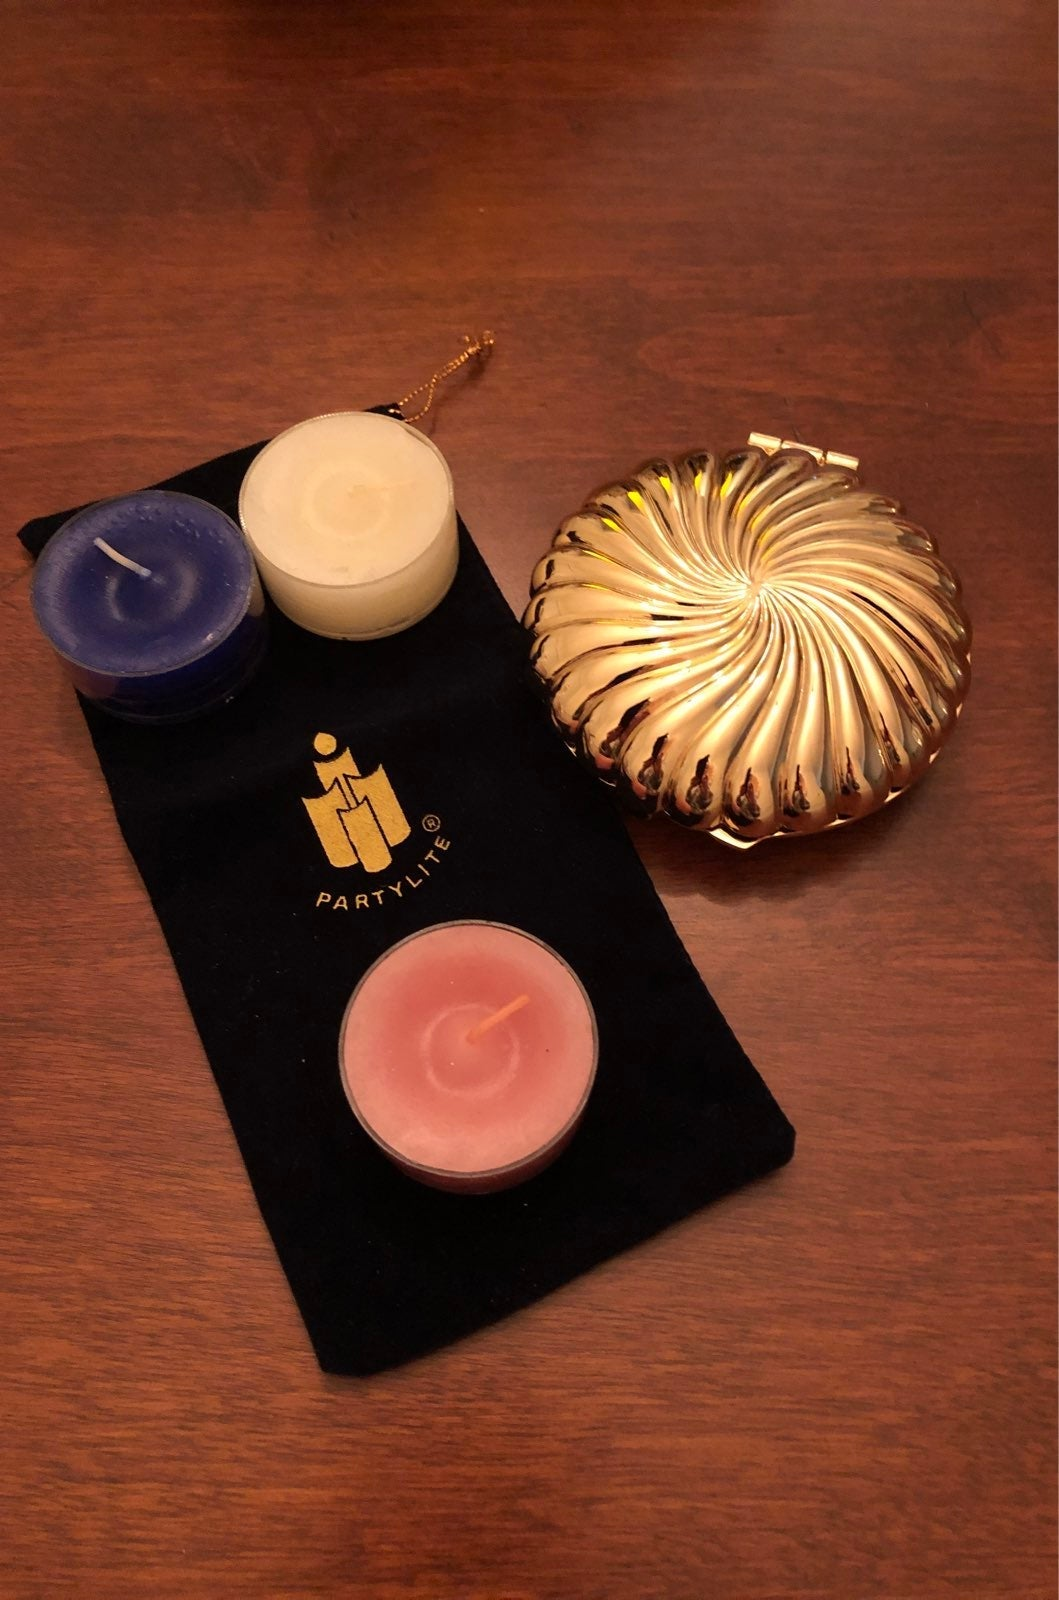 PARTYLITE TRAVEL CANDLE AND CASES